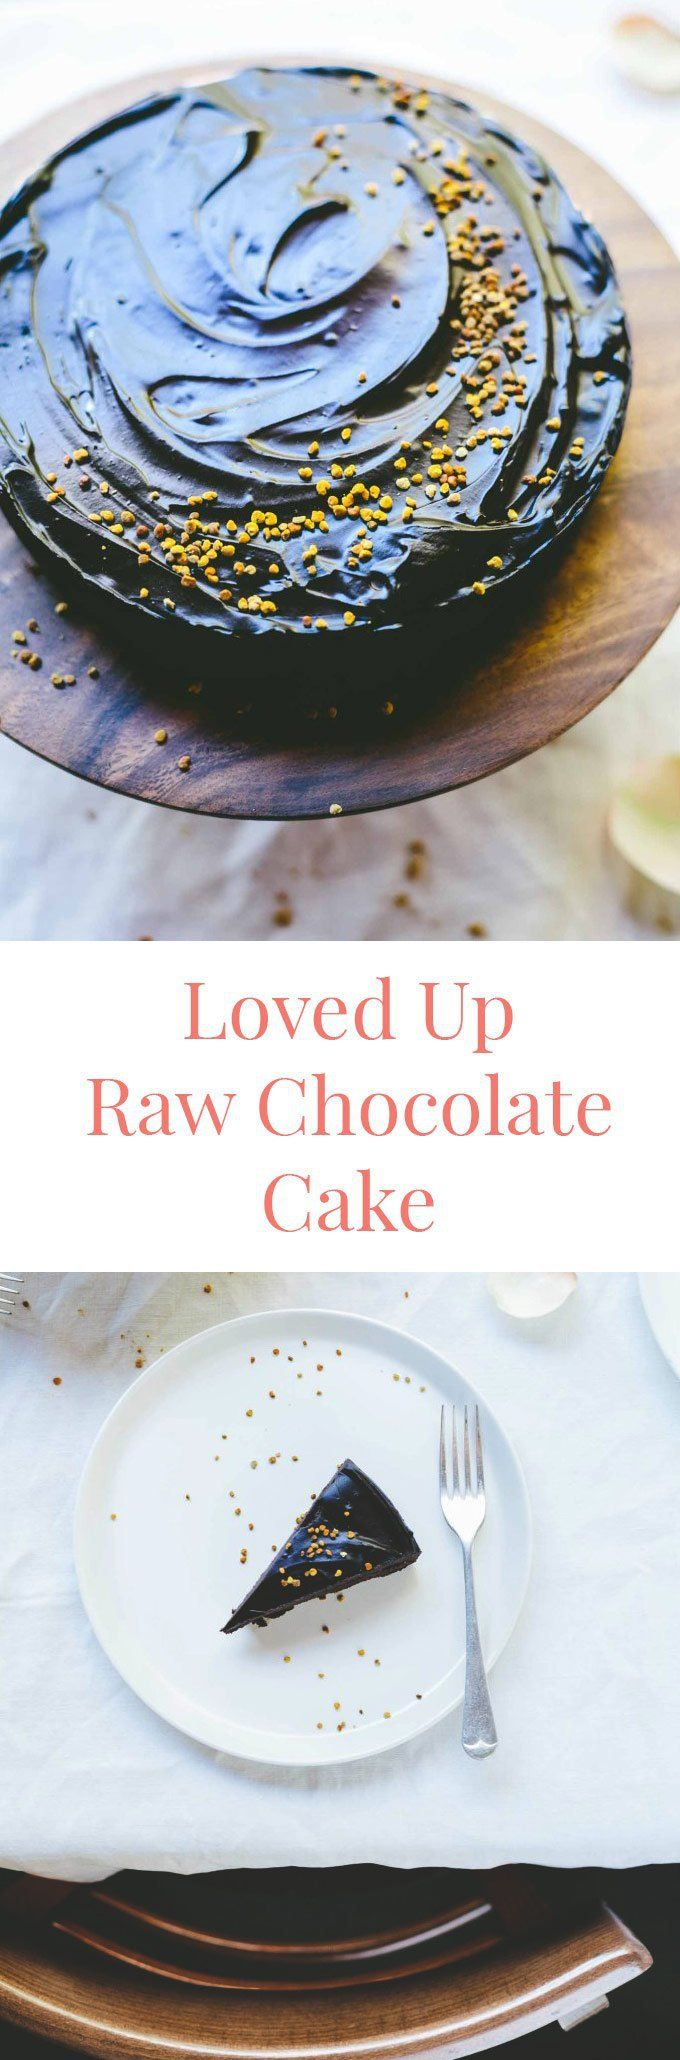 My Loved Up Raw Chocolate Cake is a revelation. Gluten-free, sugar free, dairy-free, nut-free and vegan, this dessert is perfectly rich and gooey.